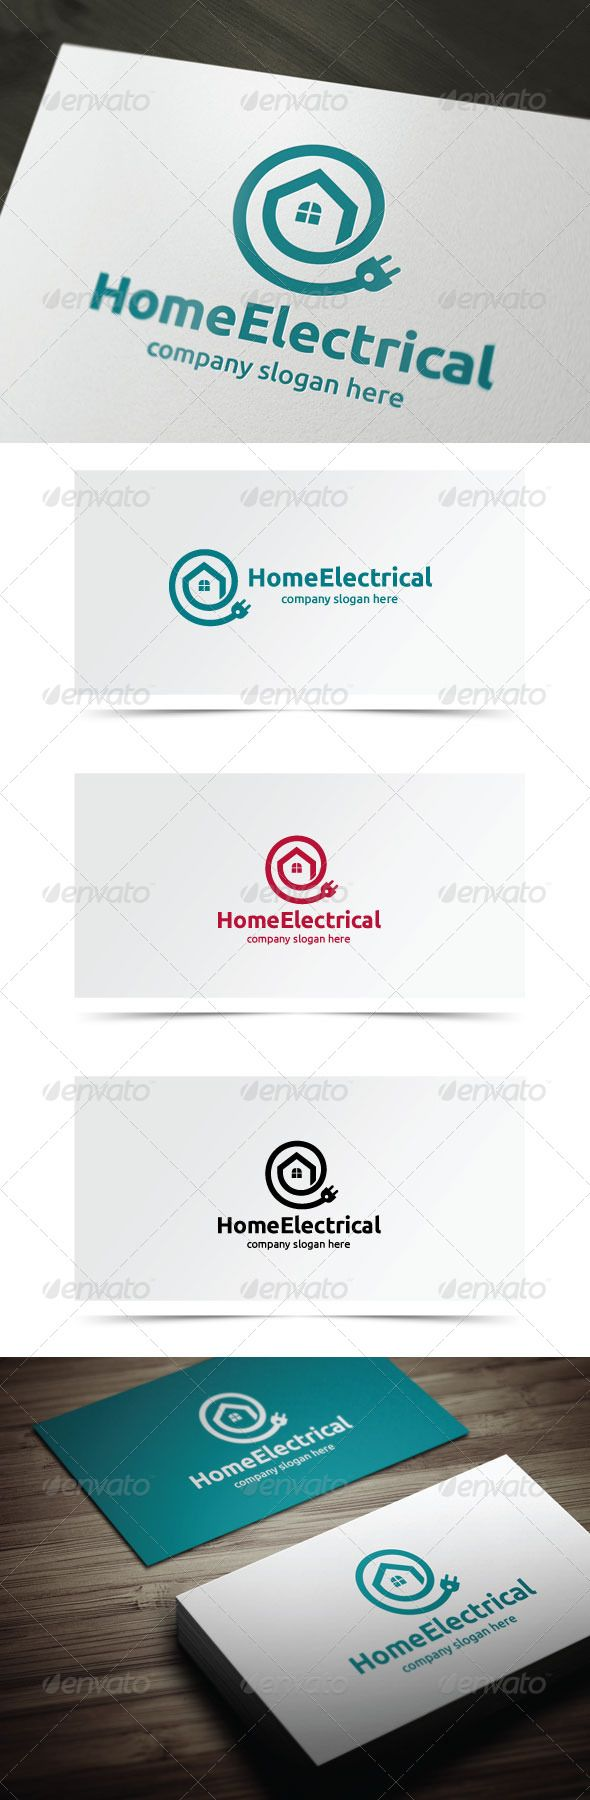 Home Electrical — Vector EPS #power #fix • Available here → https://graphicriver.net/item/home-electrical/7401644?ref=pxcr